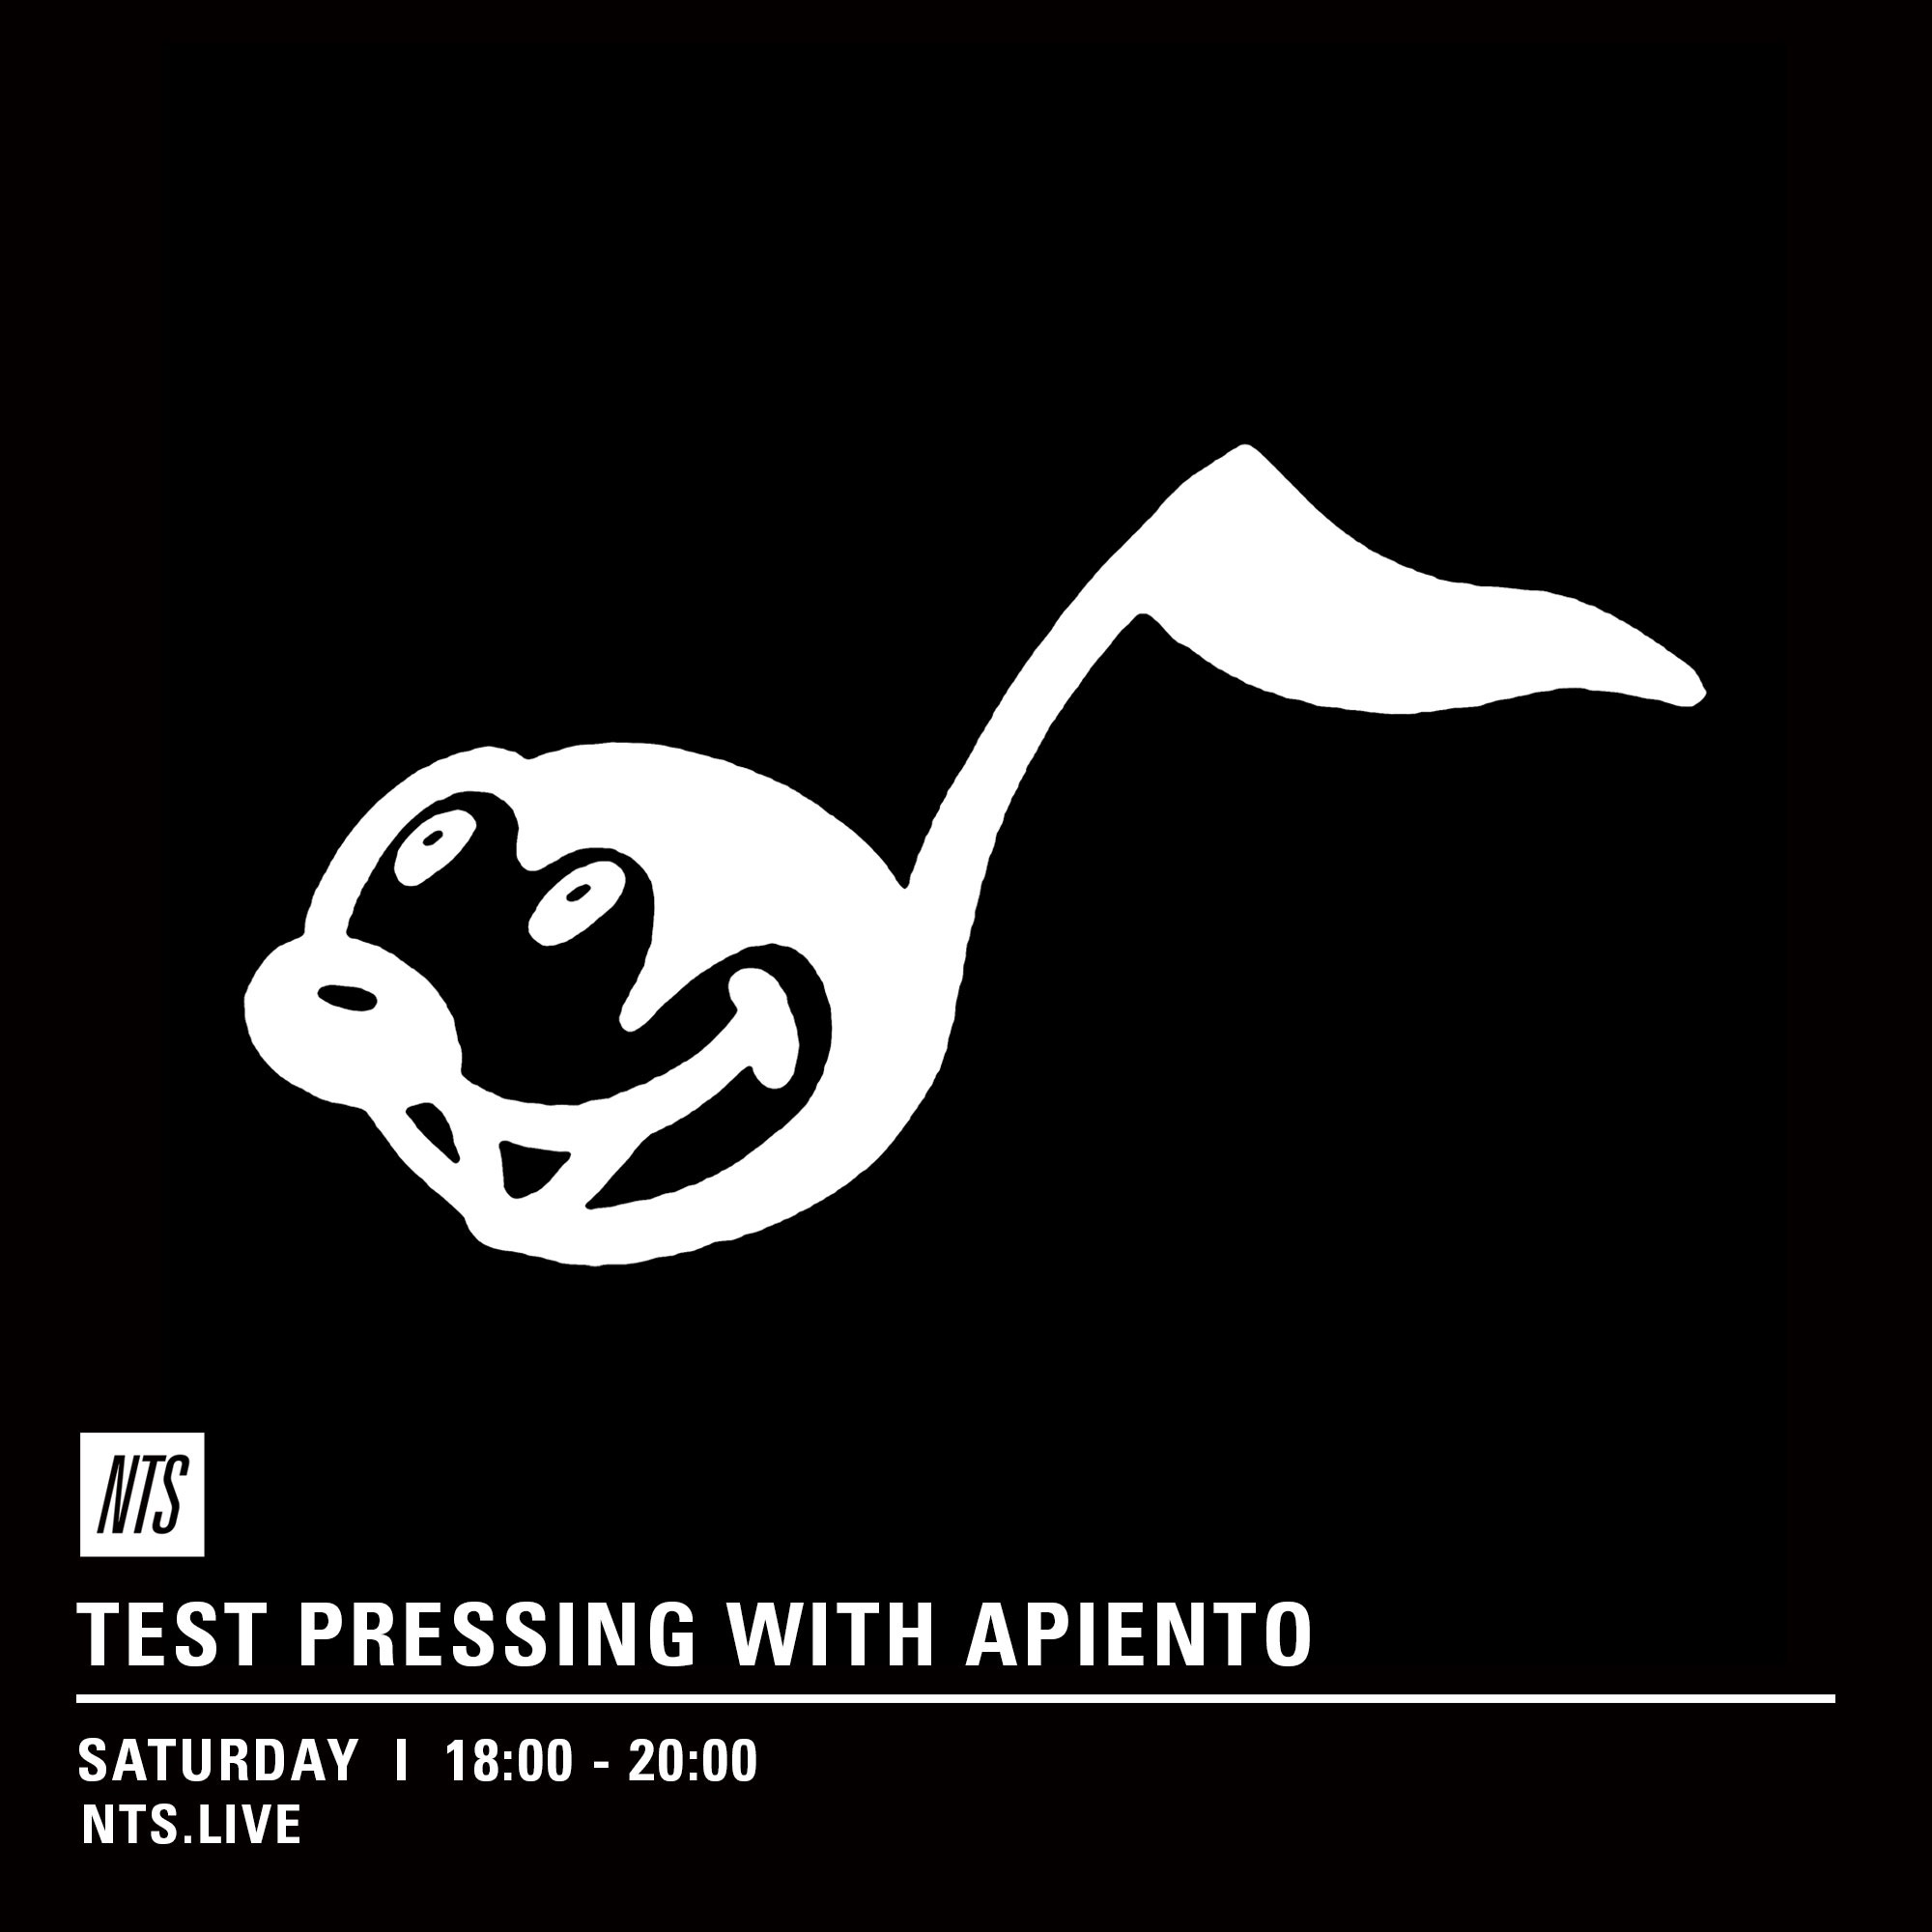 test Pressing, NTS, Apiento, Radio